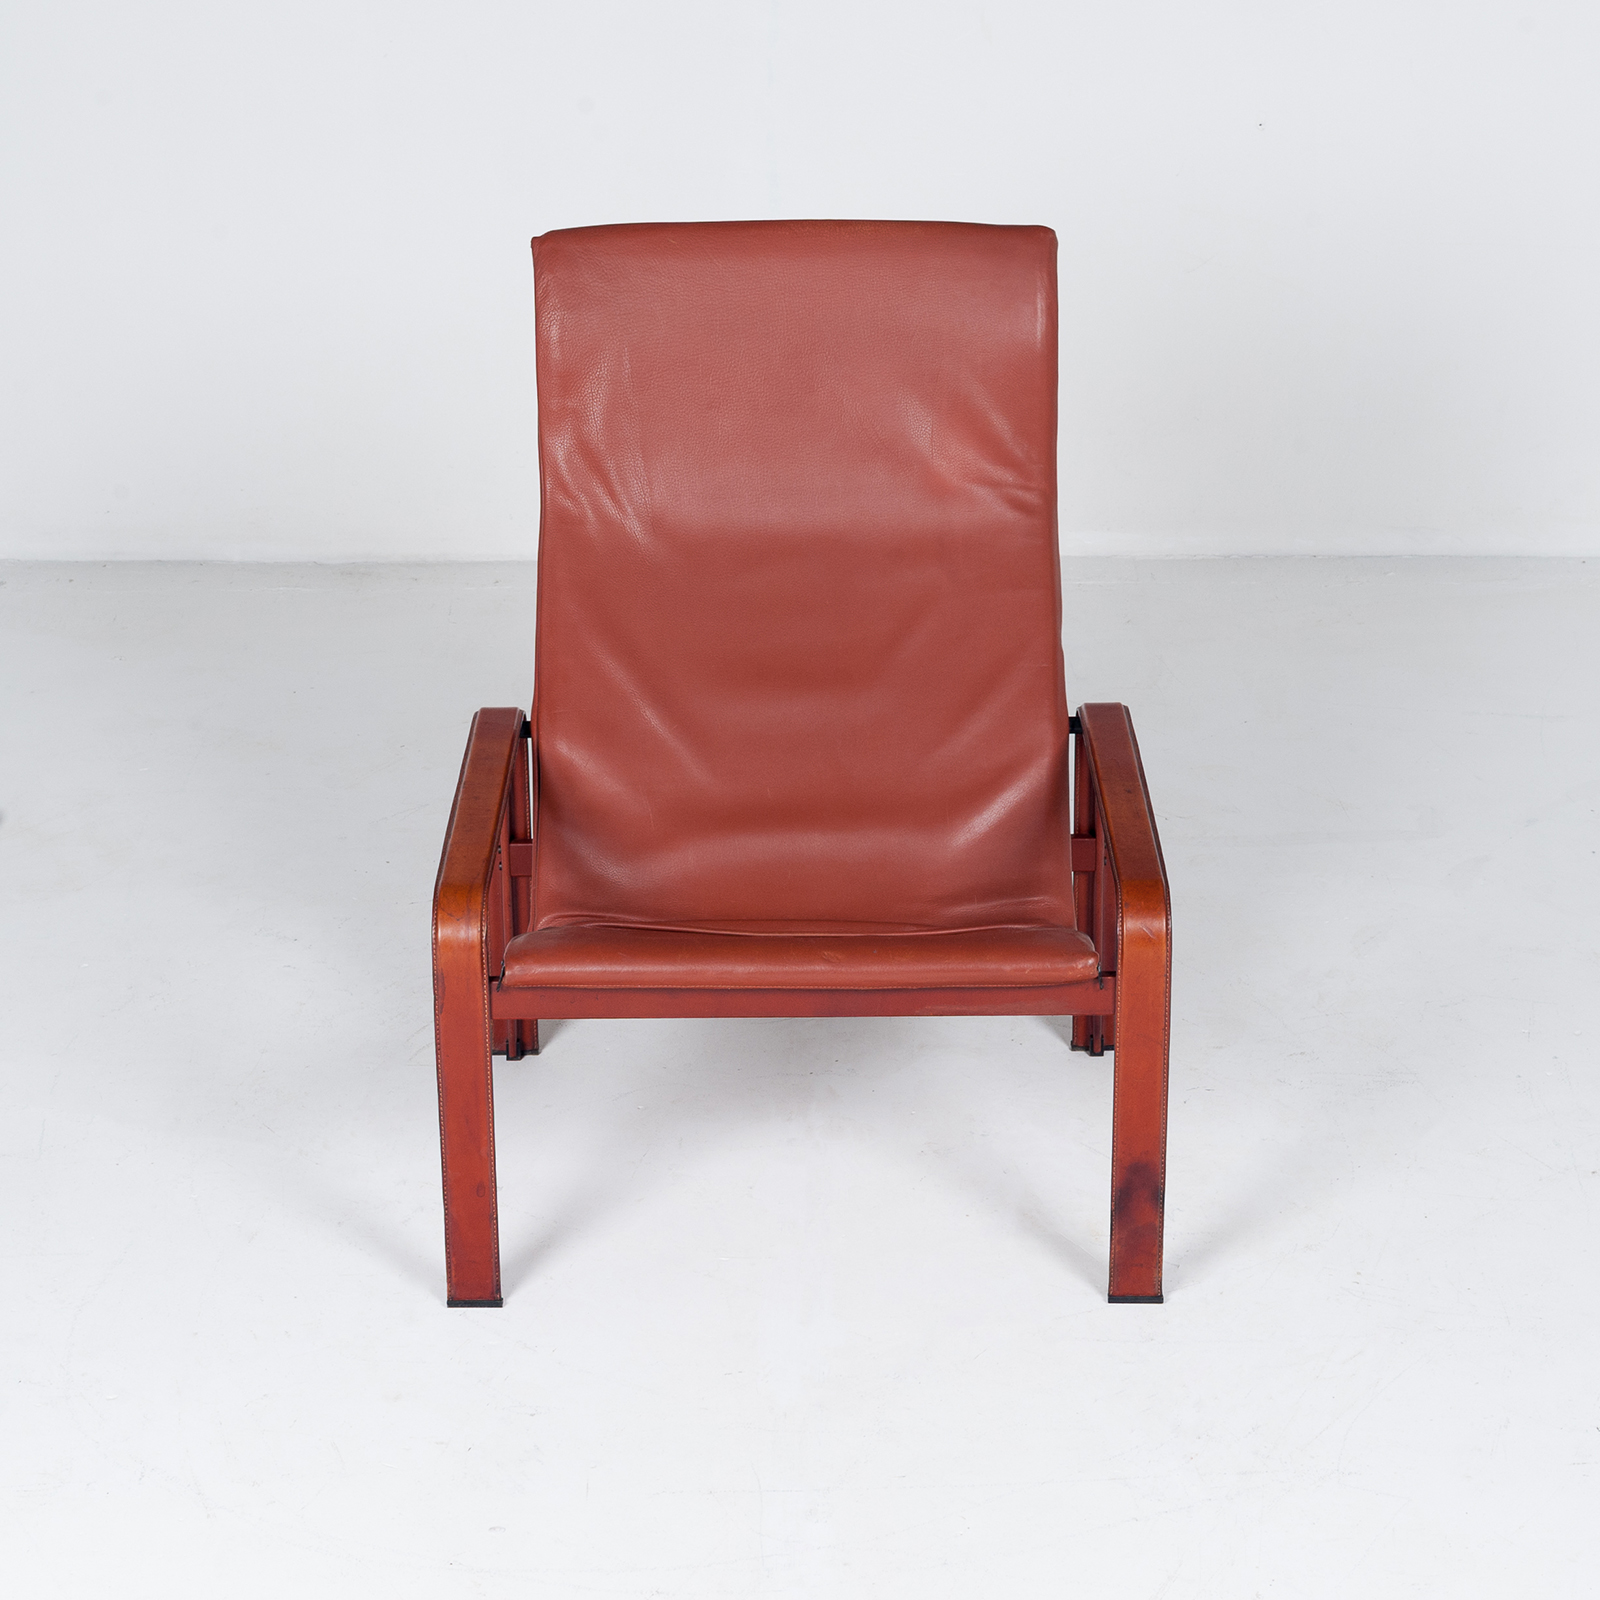 Armchair In Tan Leather By Matteo Grassi (mt Ac 194 128 It) 951